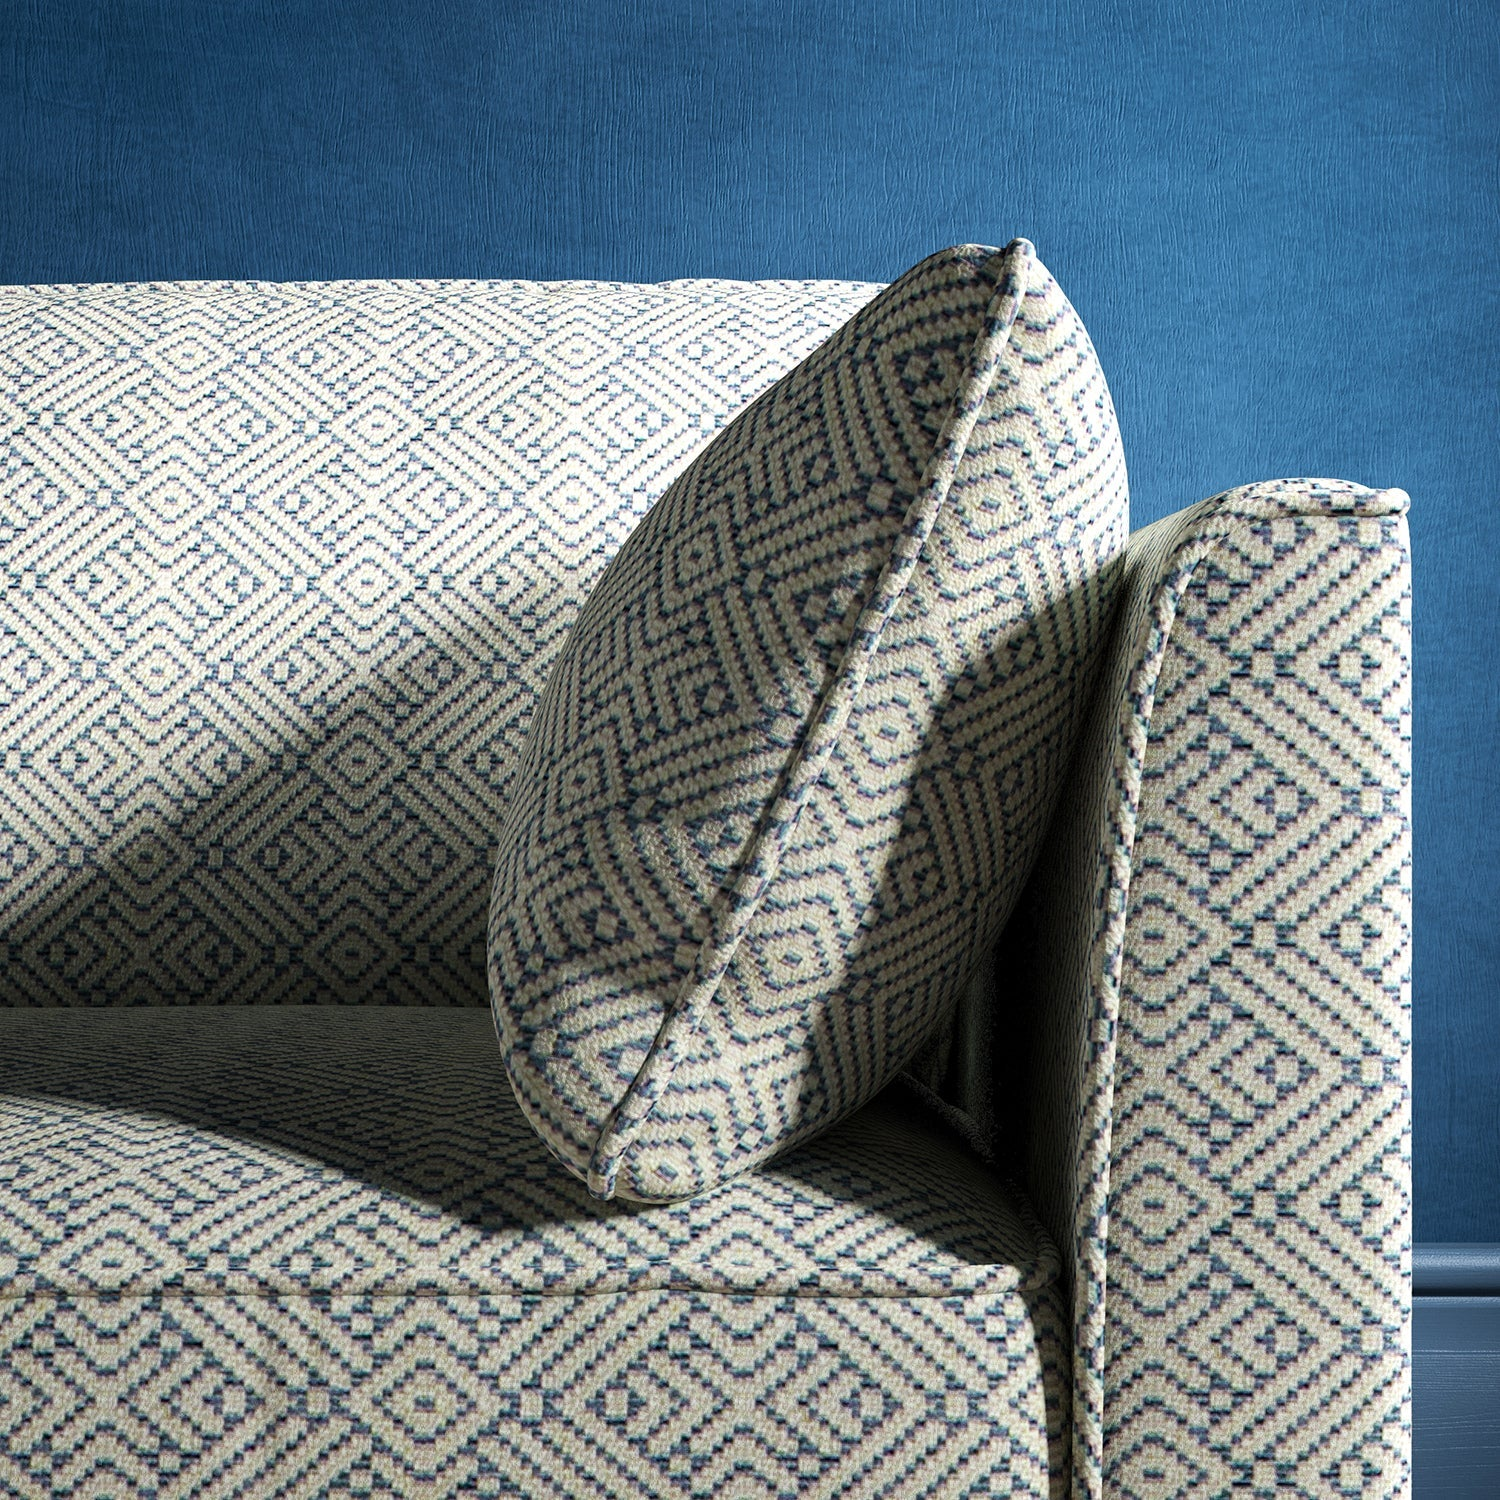 Sofa upholstered in a sky blue and neutral geometric weave upholstery fabric